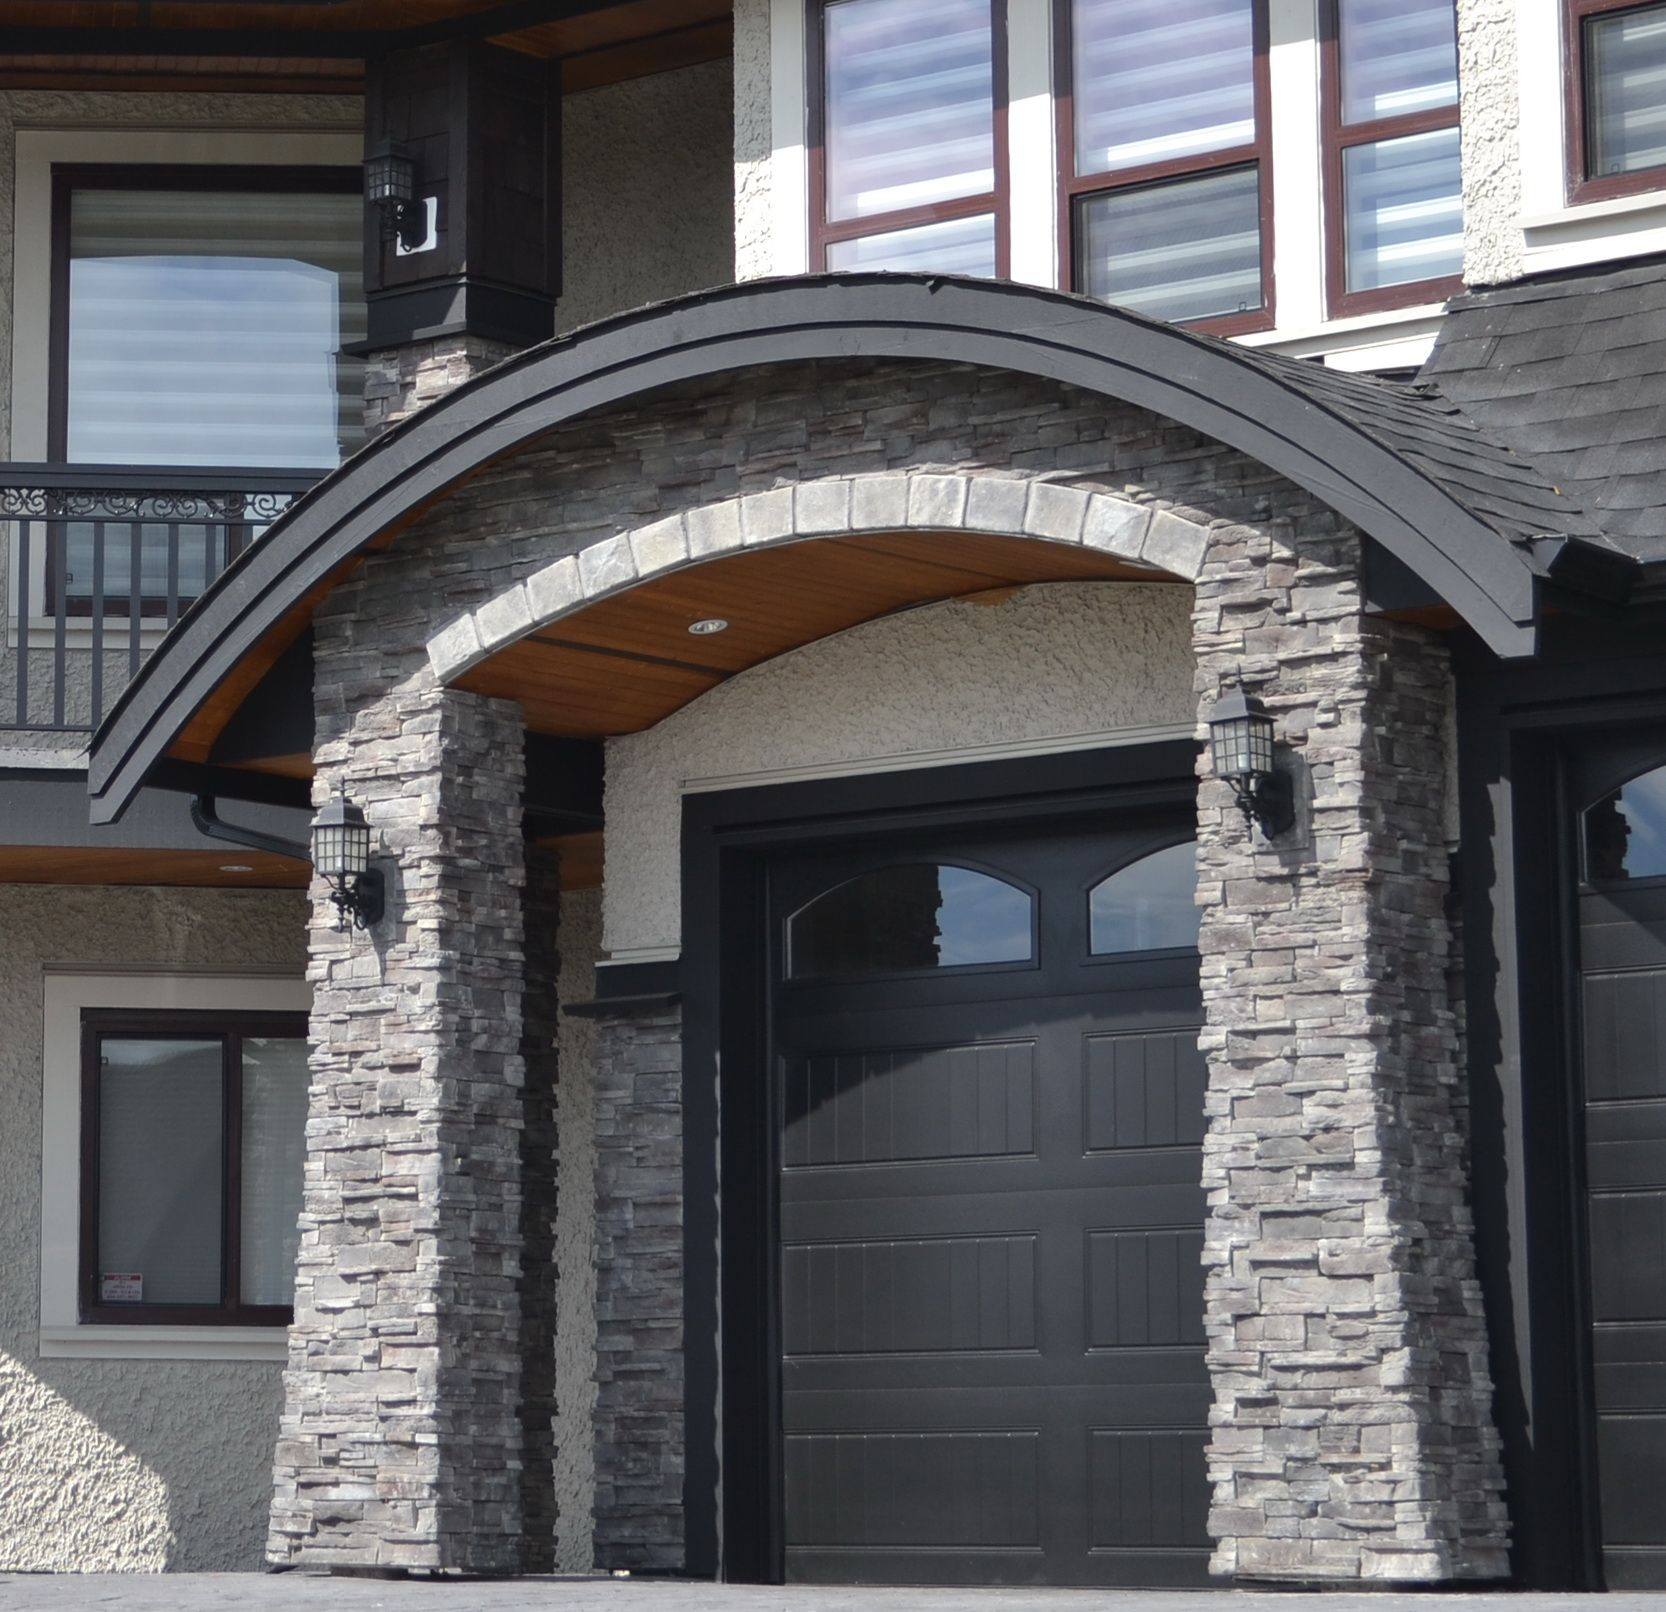 A home inspector will inspect home details like this garage archway